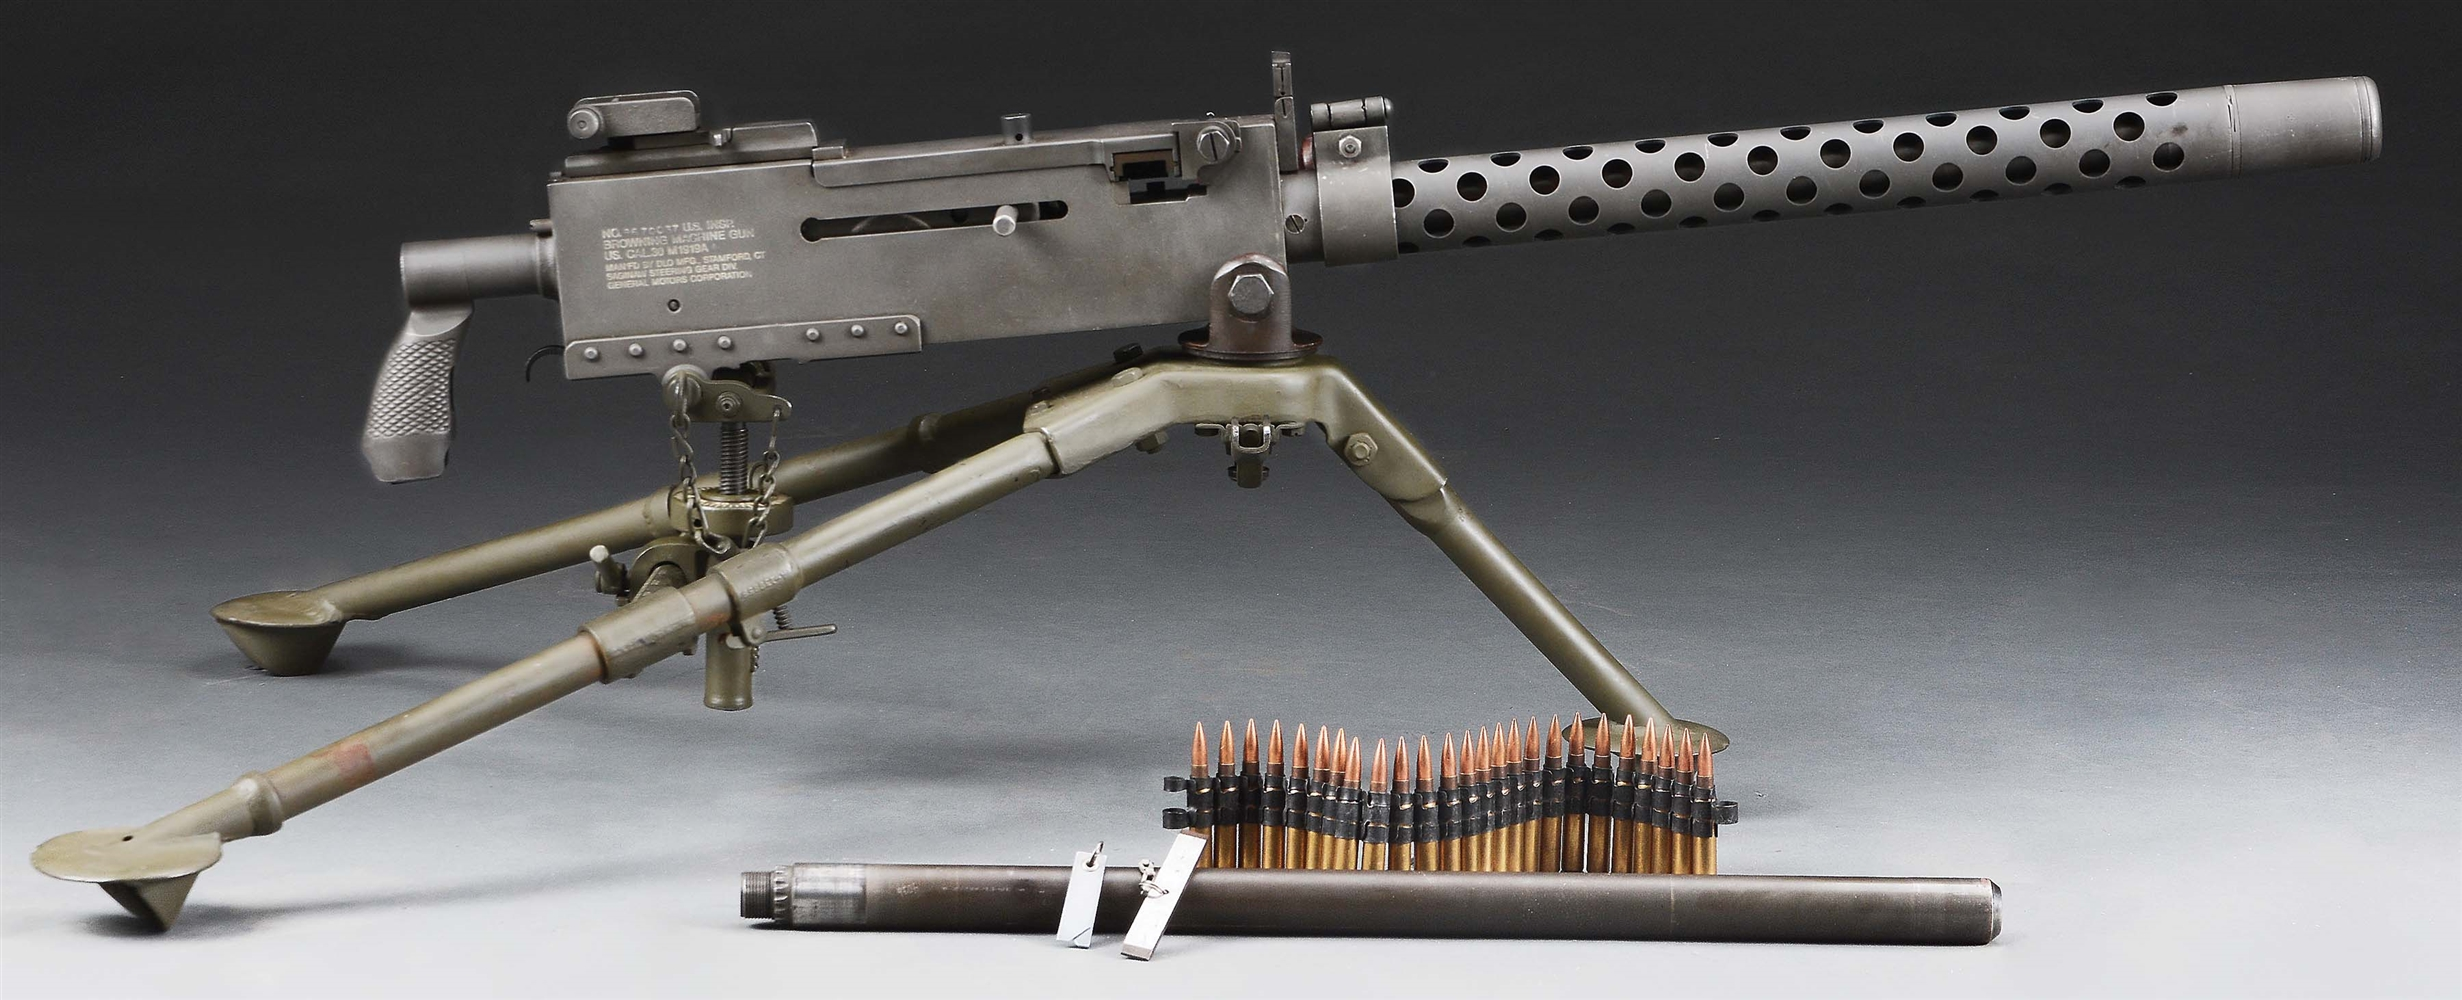 (N) HIGH CONDITION DLO SIDEPLATE BROWNING 1919A4 MACHINE GUN ON AMC MANUFACTURED TRIPOD (FULLY TRANSFERABLE)